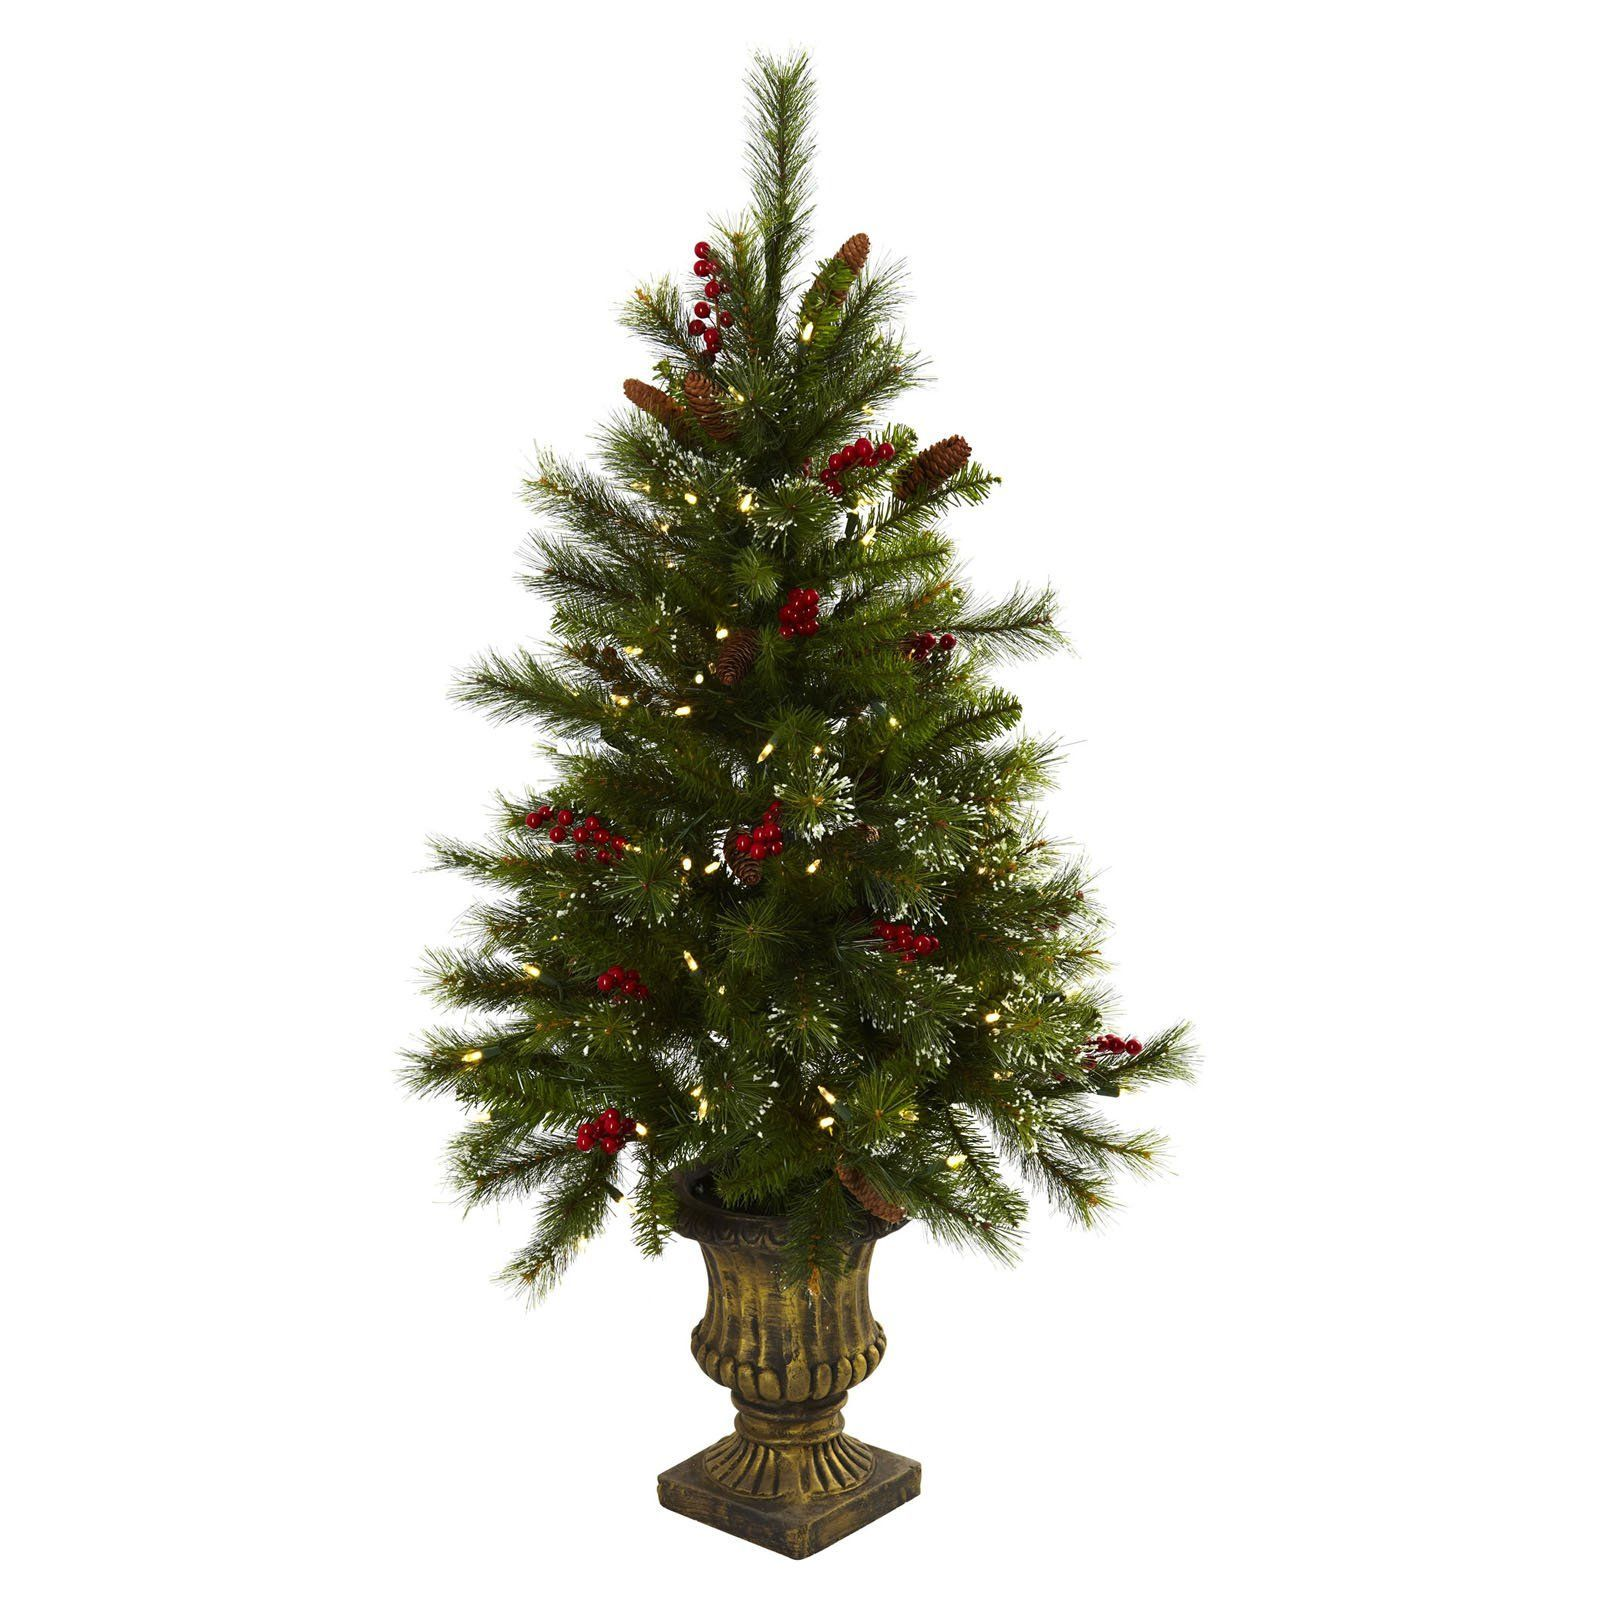 4 Ft Pre Lit Christmas Tree With Berries Pine Cones Urn Clear Lights Faux Christmas Trees Pre Lit Christmas Tree Slim Artificial Christmas Trees